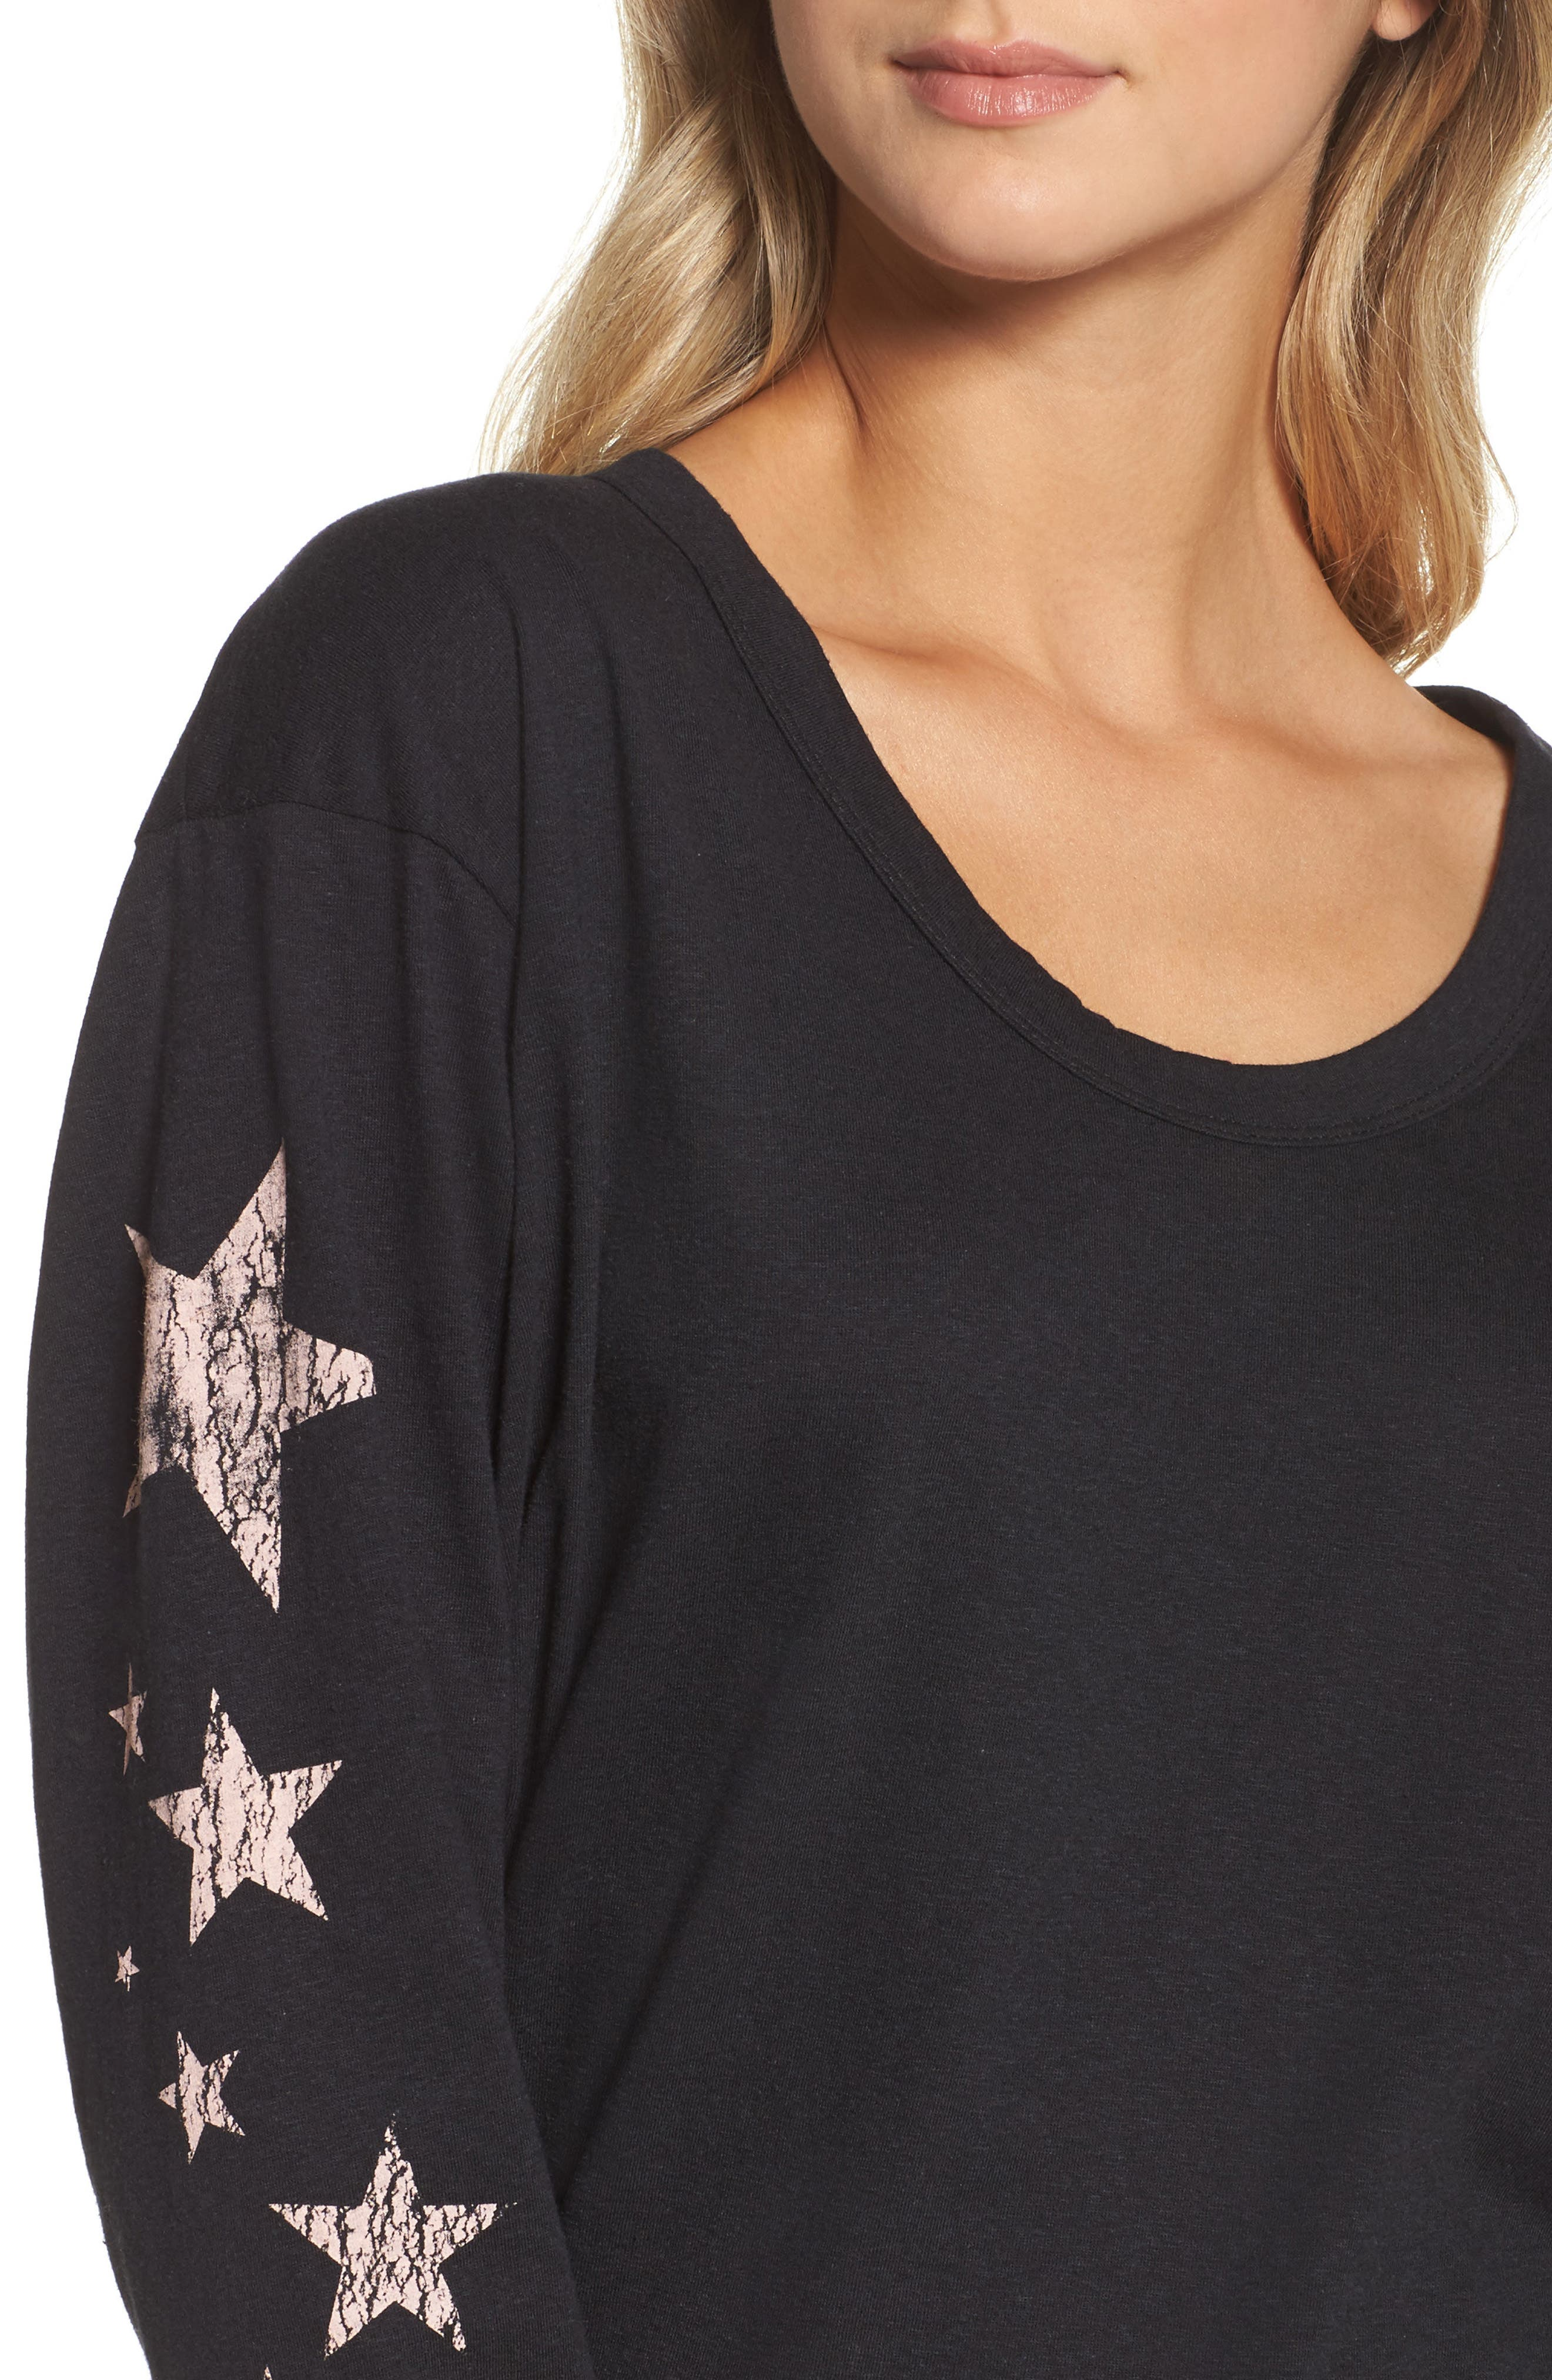 Free People Melrose Star Graphic Top,                             Alternate thumbnail 4, color,                             BLACK